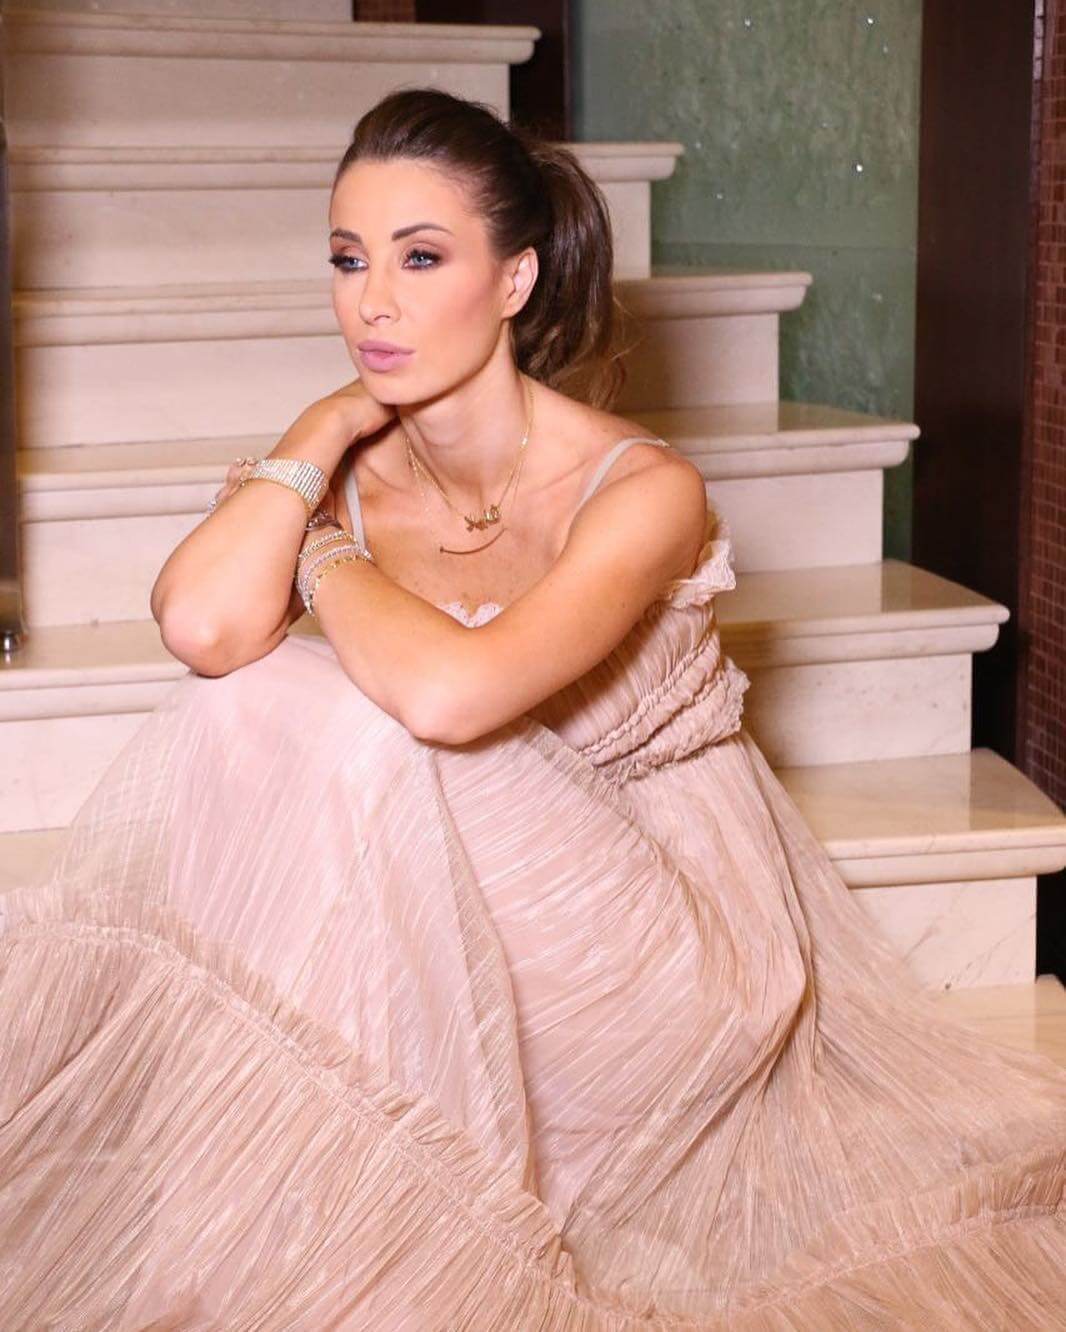 Anabella Nude 49 hot pictures of anabella hilal which will win your hearts